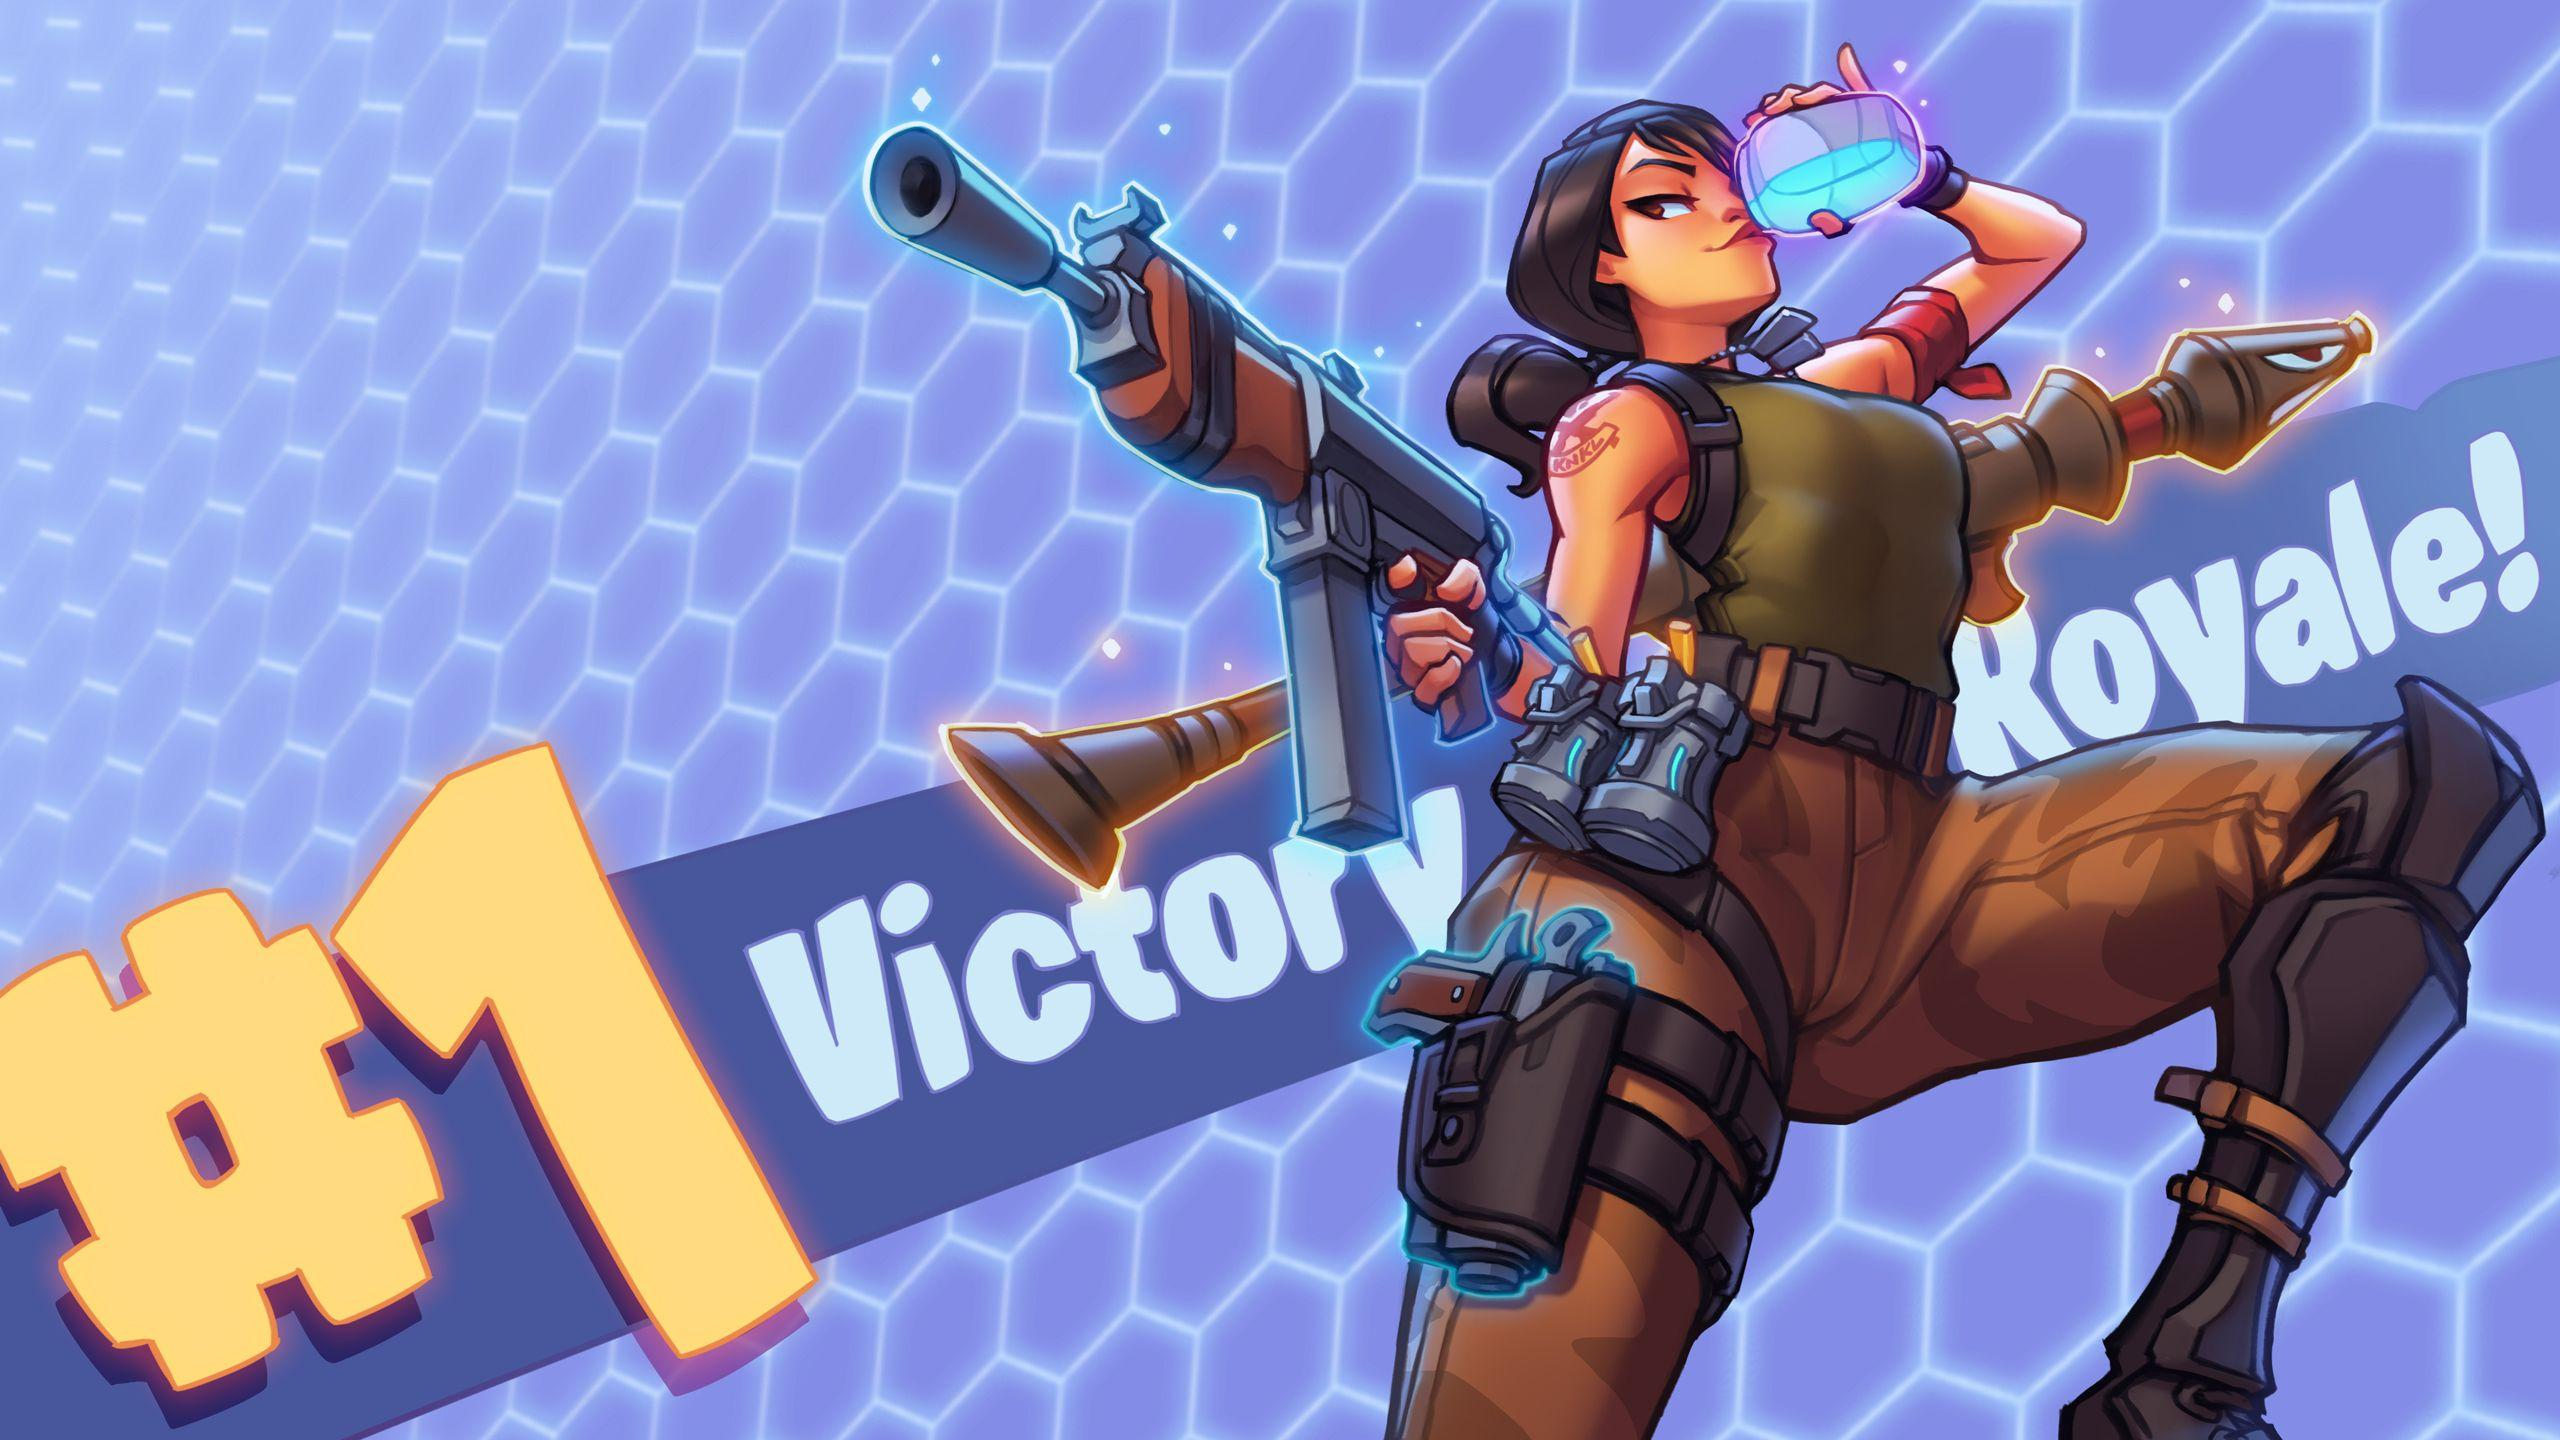 Fortnite Battle Royale is coming to iOS and Andriod